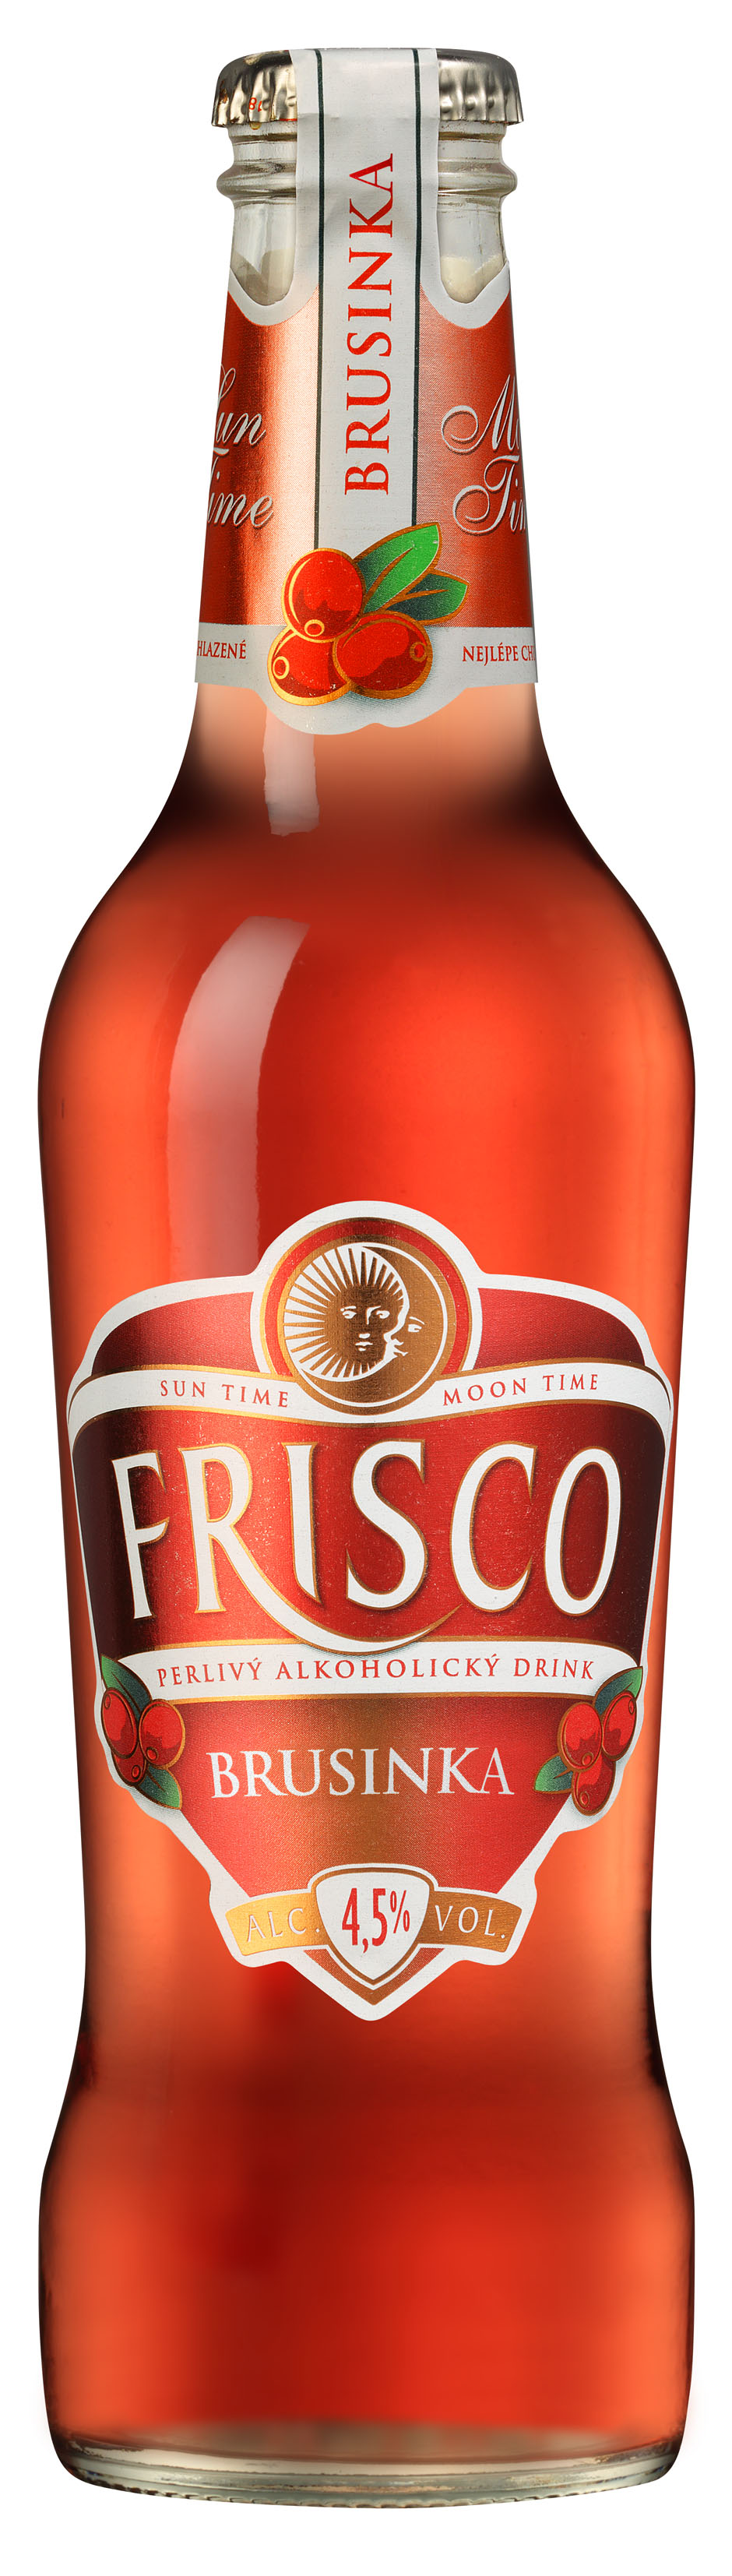 FRISCO BRUSINKA - 0,33L  4,5%